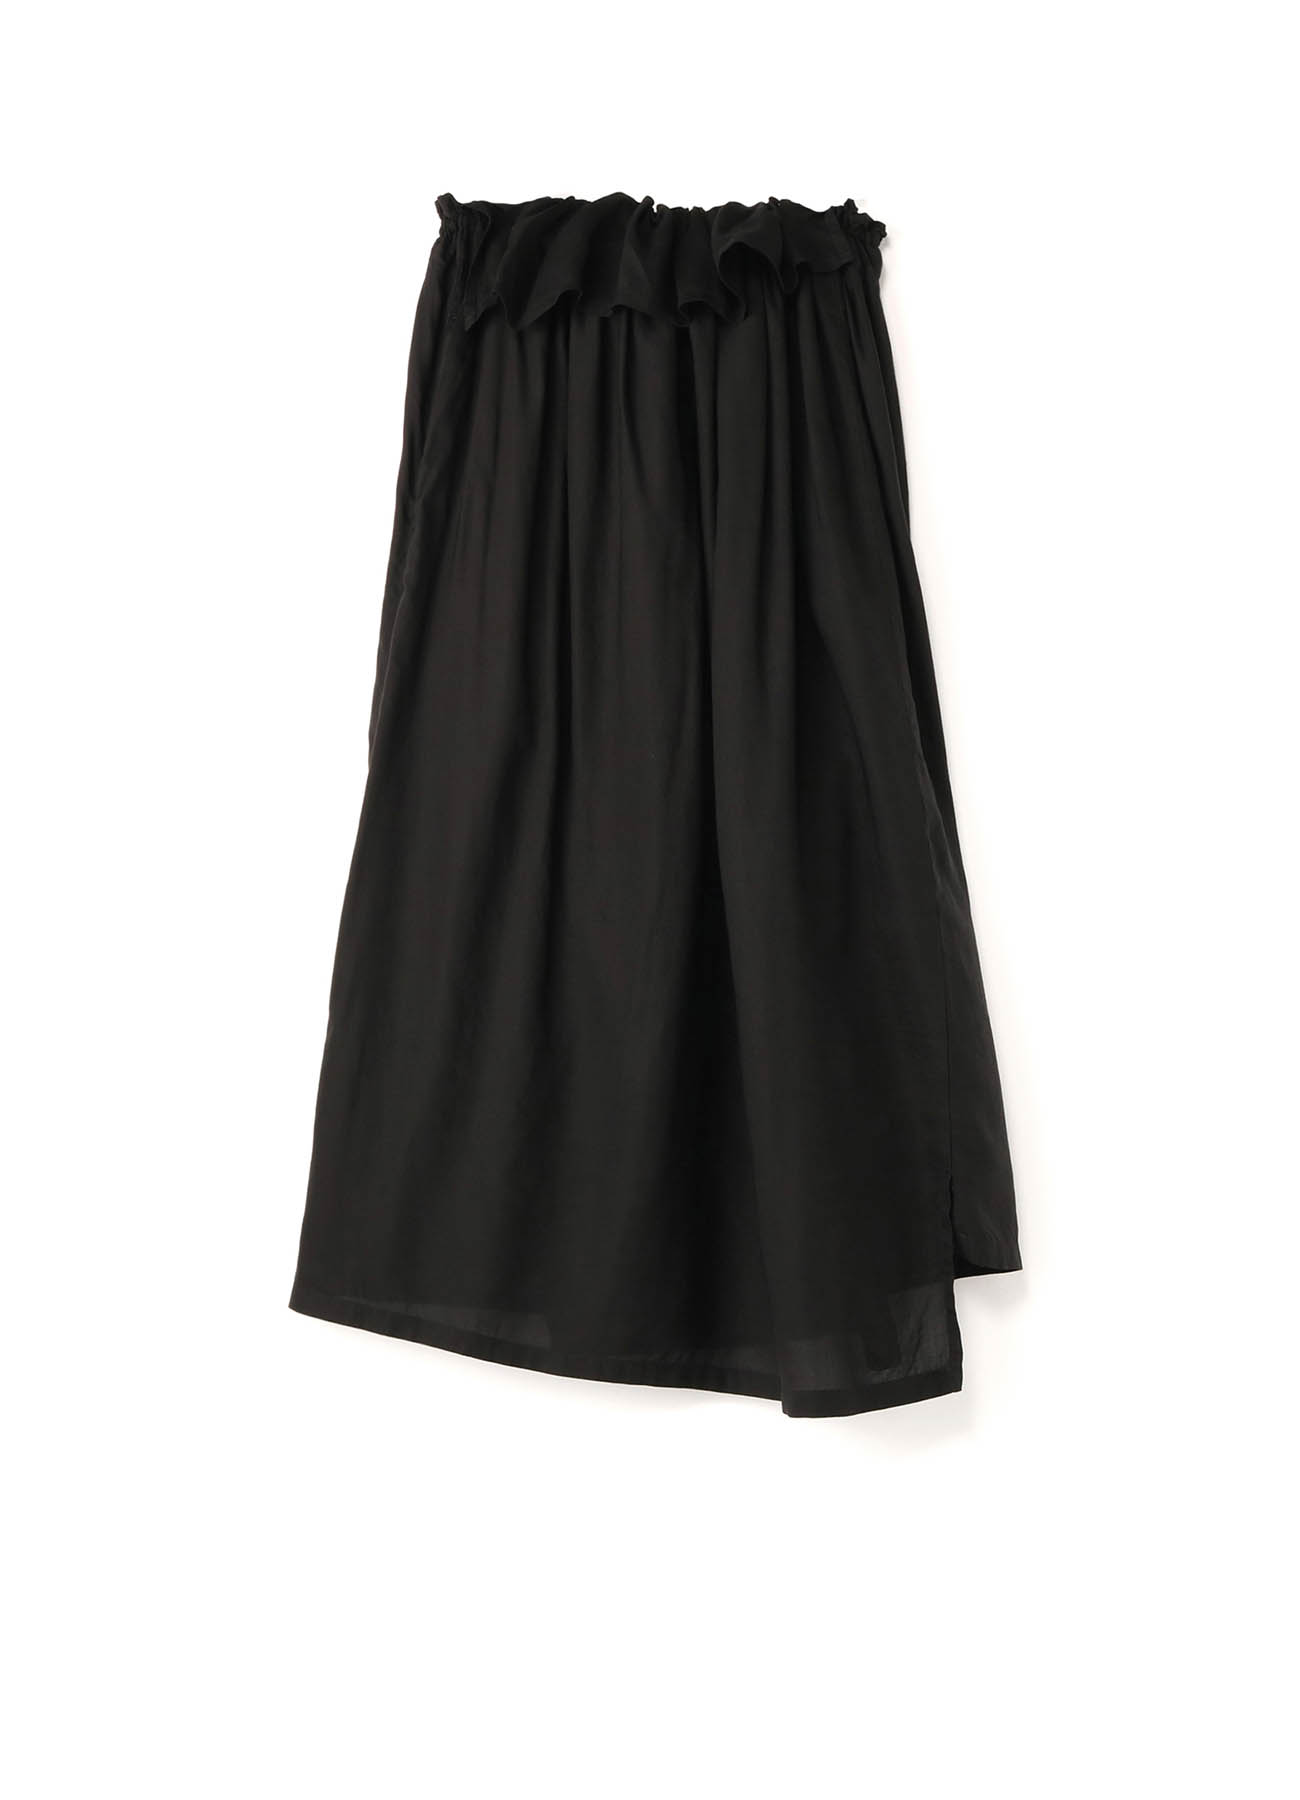 Cu/SPAN TWILL PR DYE ELASTIC GATHER SKIRT